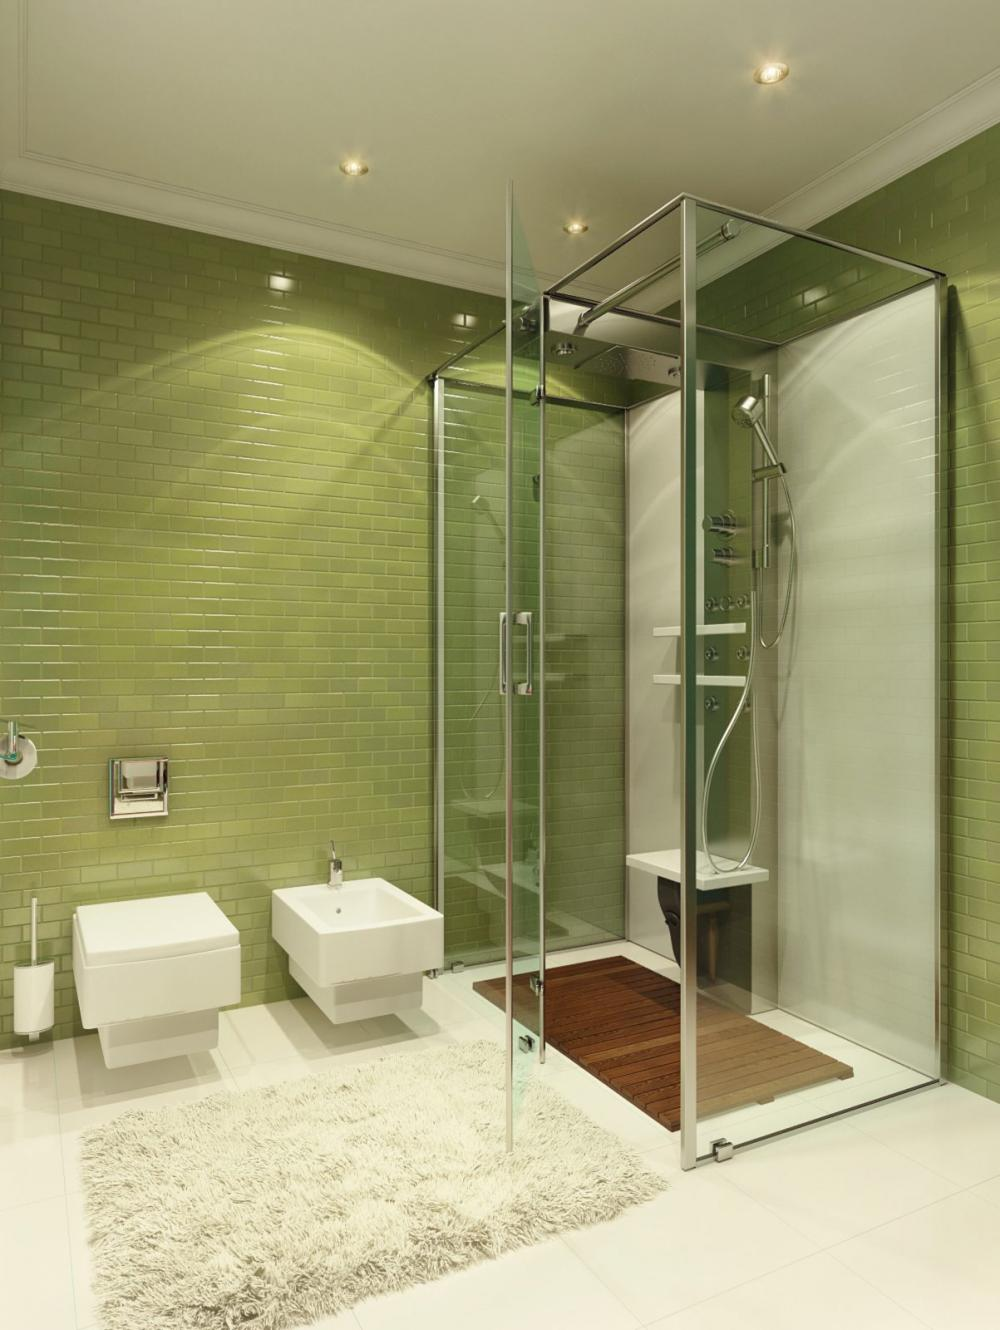 bathroom captovating barhroom design with green tile bathroom